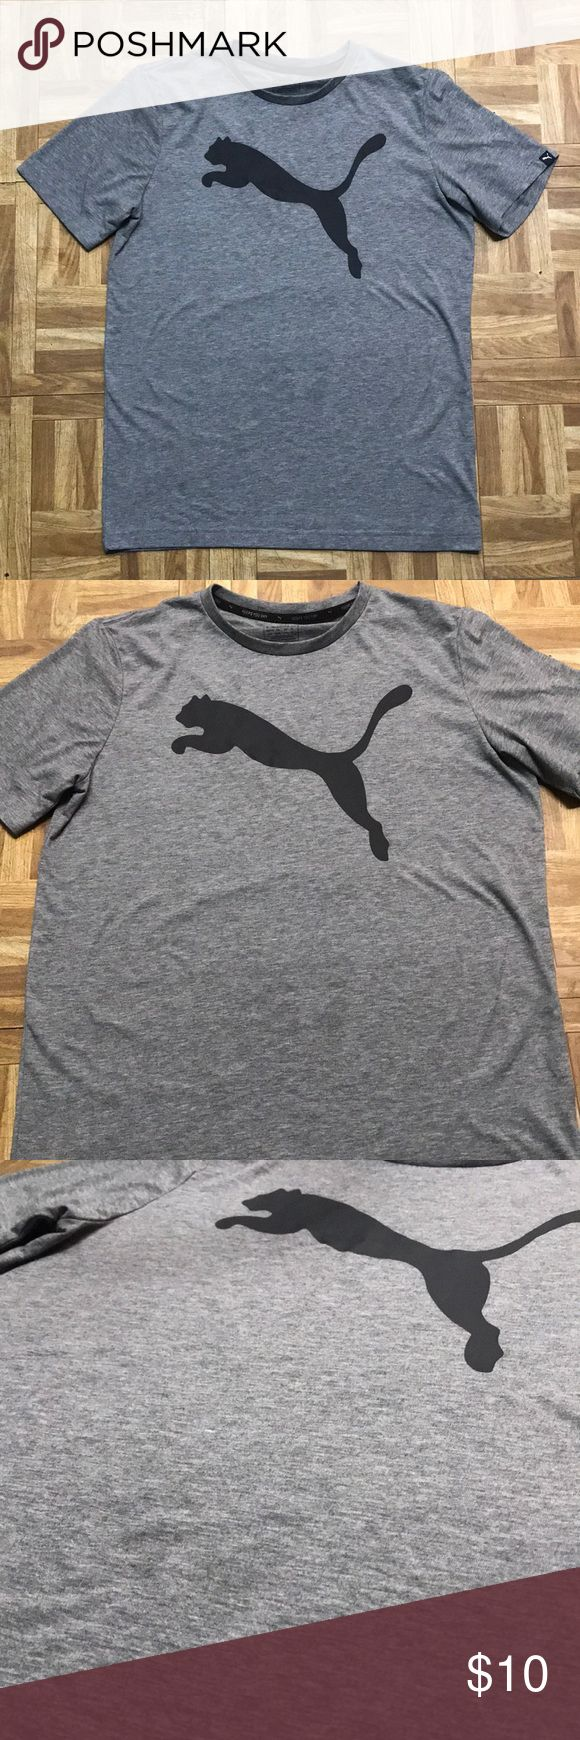 Men's puma shirt Size medium. Marked gray color with black puma on front. Short sleeve. Crew neck. Like new condition. Puma shirt - workout like shirt, light and airy. Helps keep you dry. Smoke free home. Puma Shirts Tees - Short Sleeve